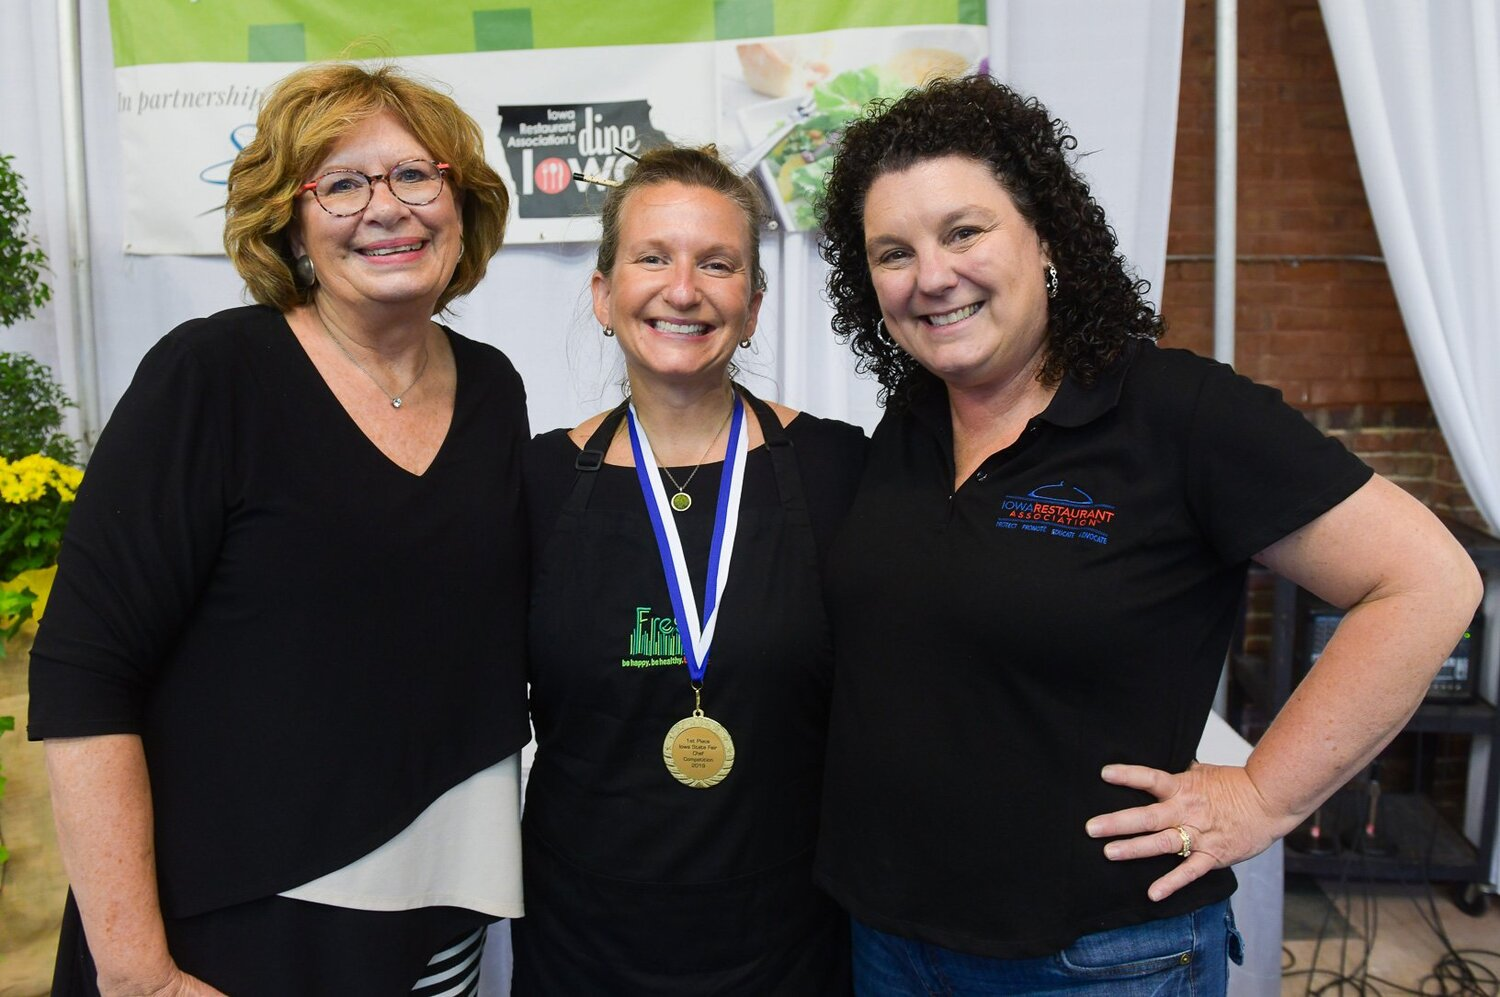 Jessica Dunker (right) poses with Linda Funk (left) and Kerri Rush (center) during the 2019 Soyfoods Salad Dressing Competition at the Iowa State Fair. Photo credit: Joseph L. Murphy/Iowa Soybean Association